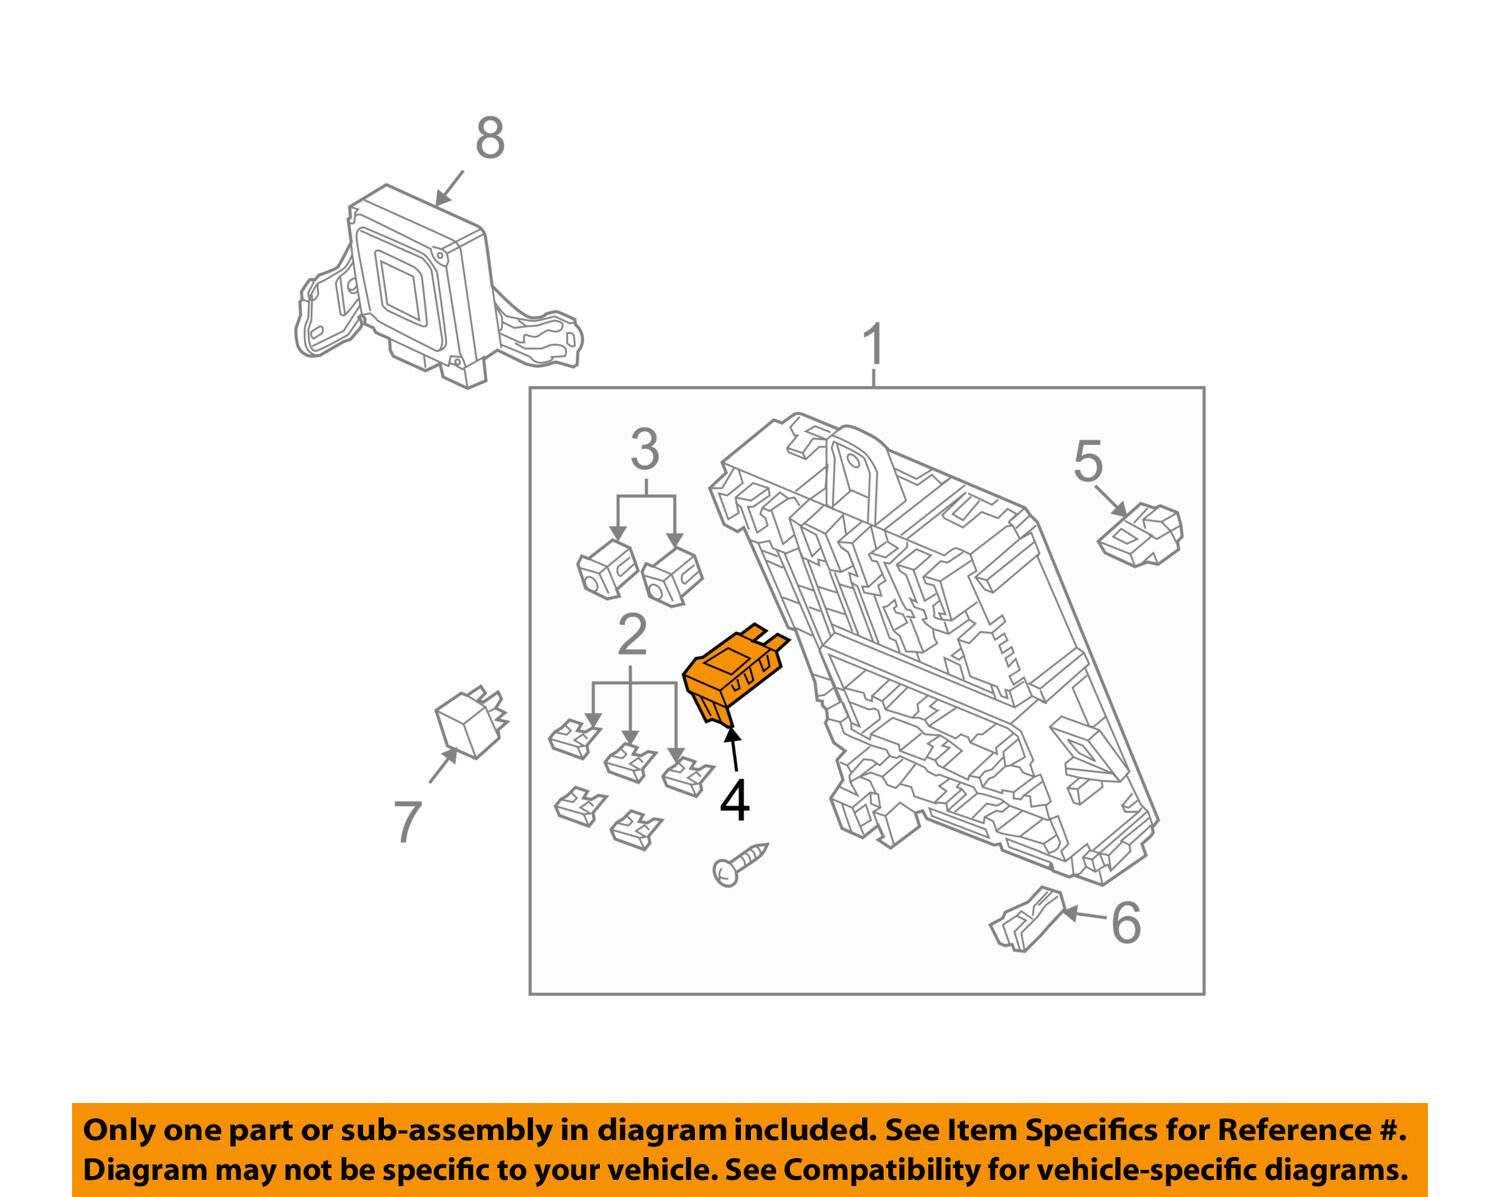 Honda Oem 09 13 Fit Electrical Maxi Fuse 38232sdaa01 1307 Picclick Accord Troubleshootin G Manual Wiring Diagram 1 Of 2only Available